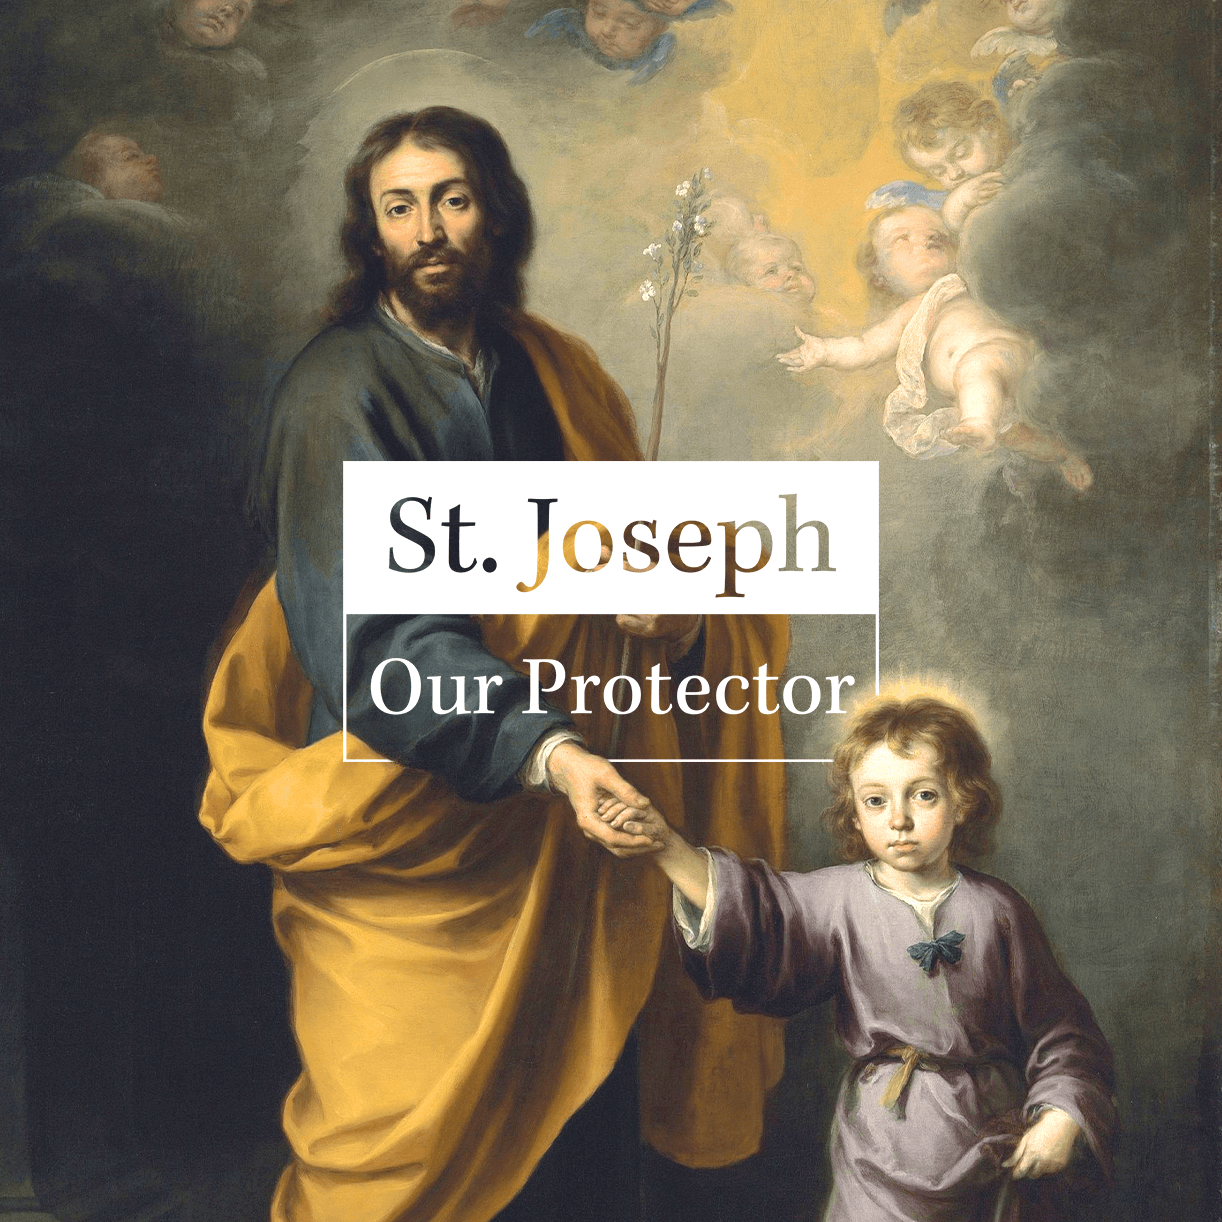 St. Joseph: Our Protector